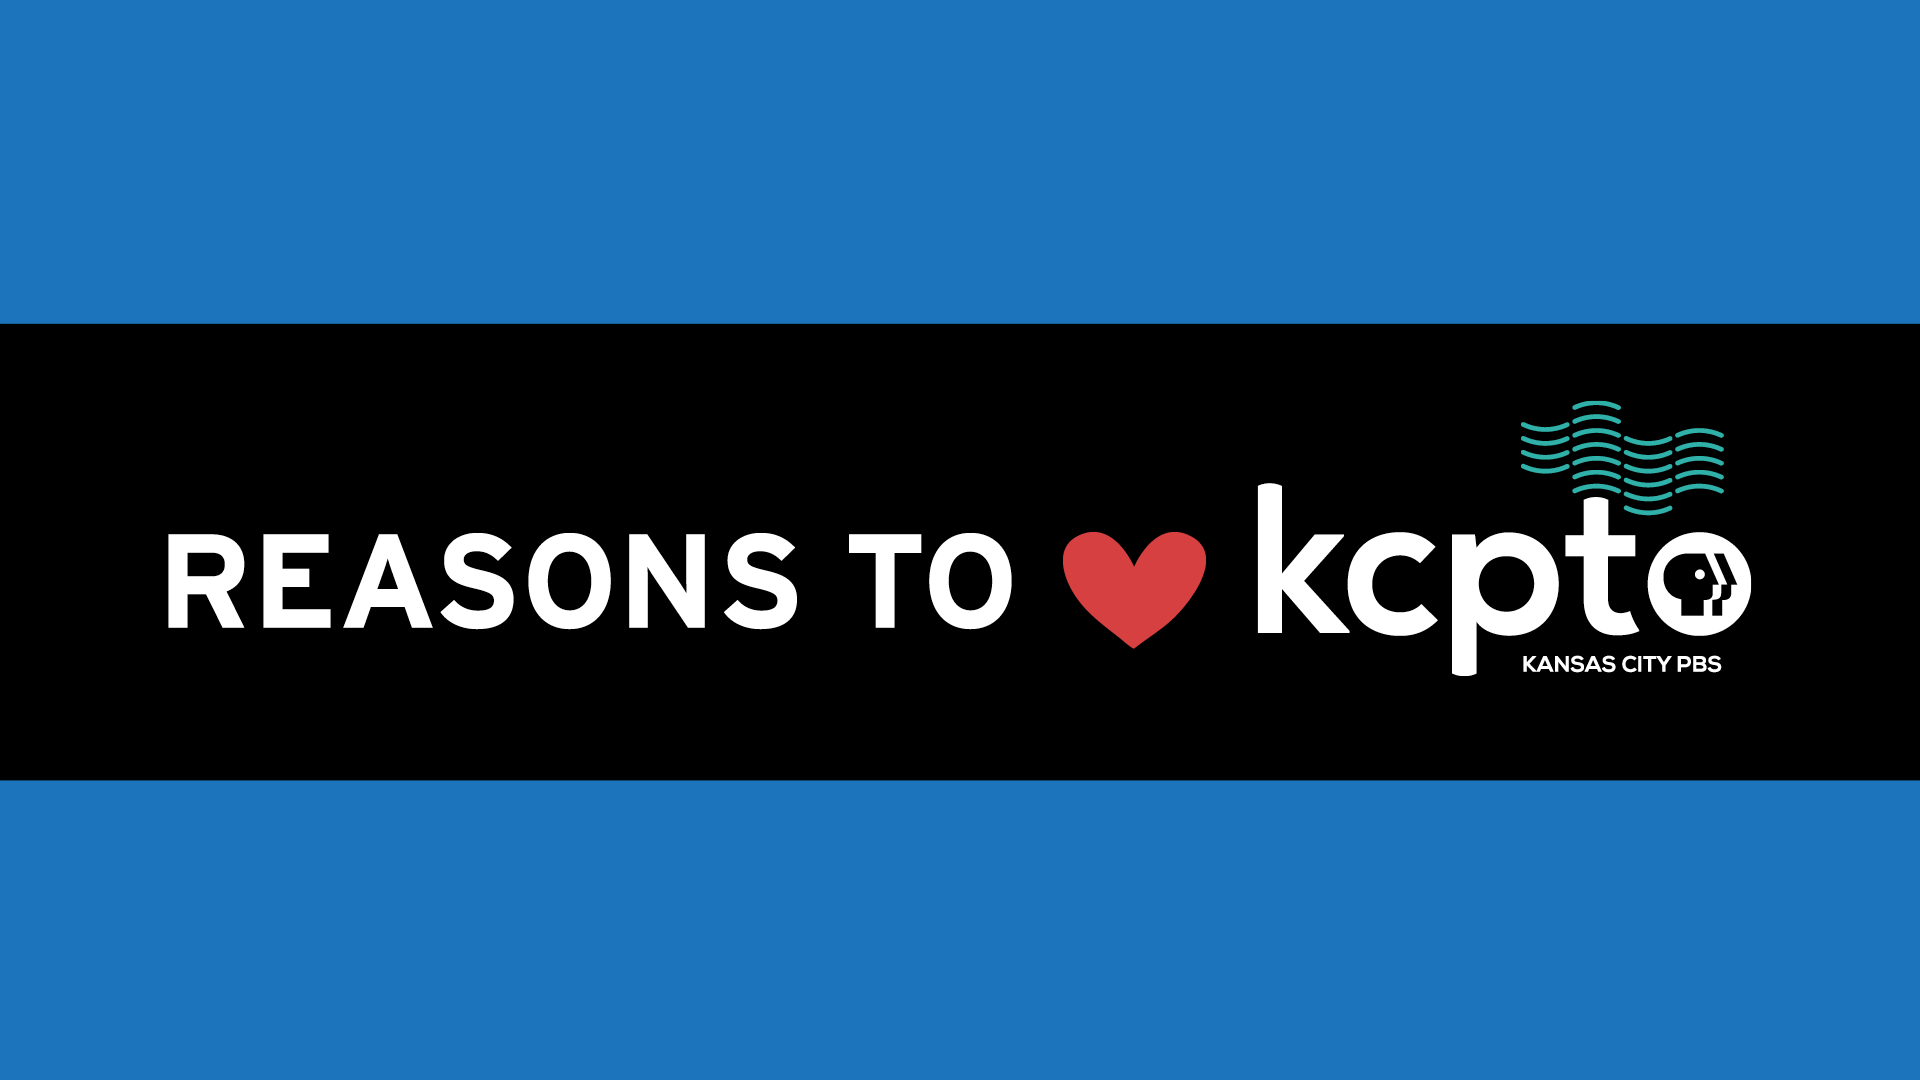 Reasons to love KCPT